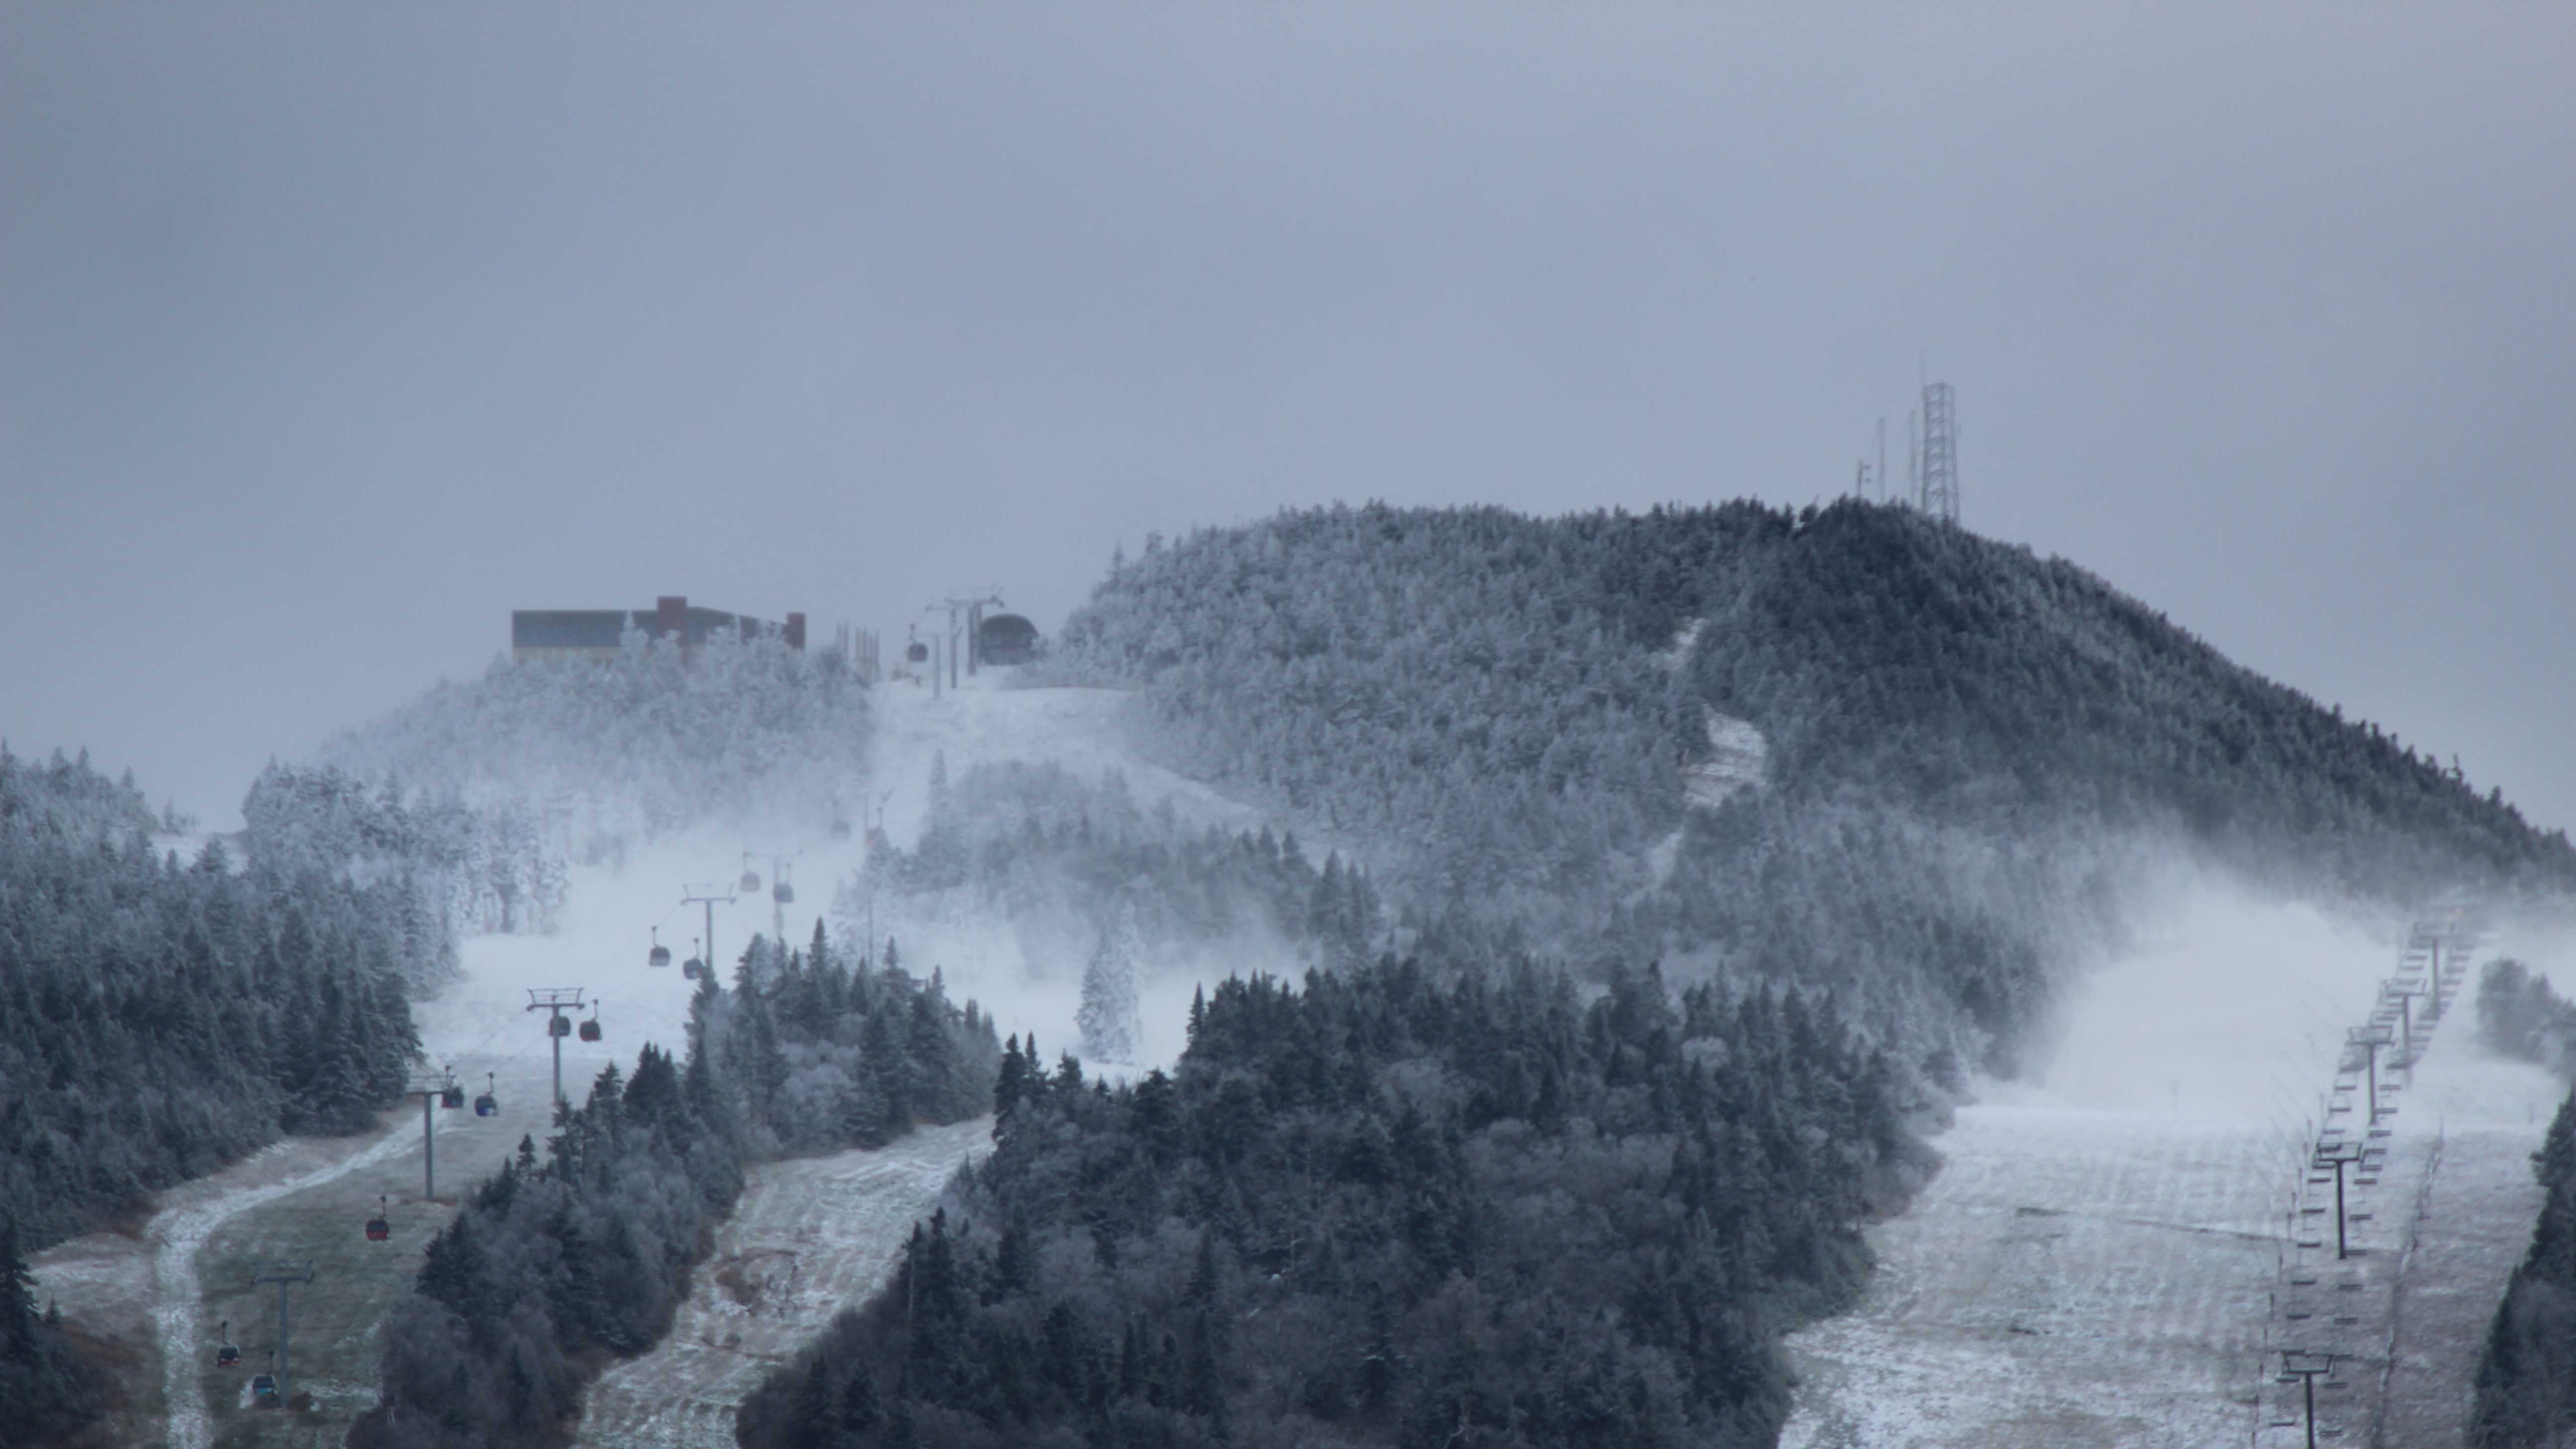 File image - Killington Ski Resort